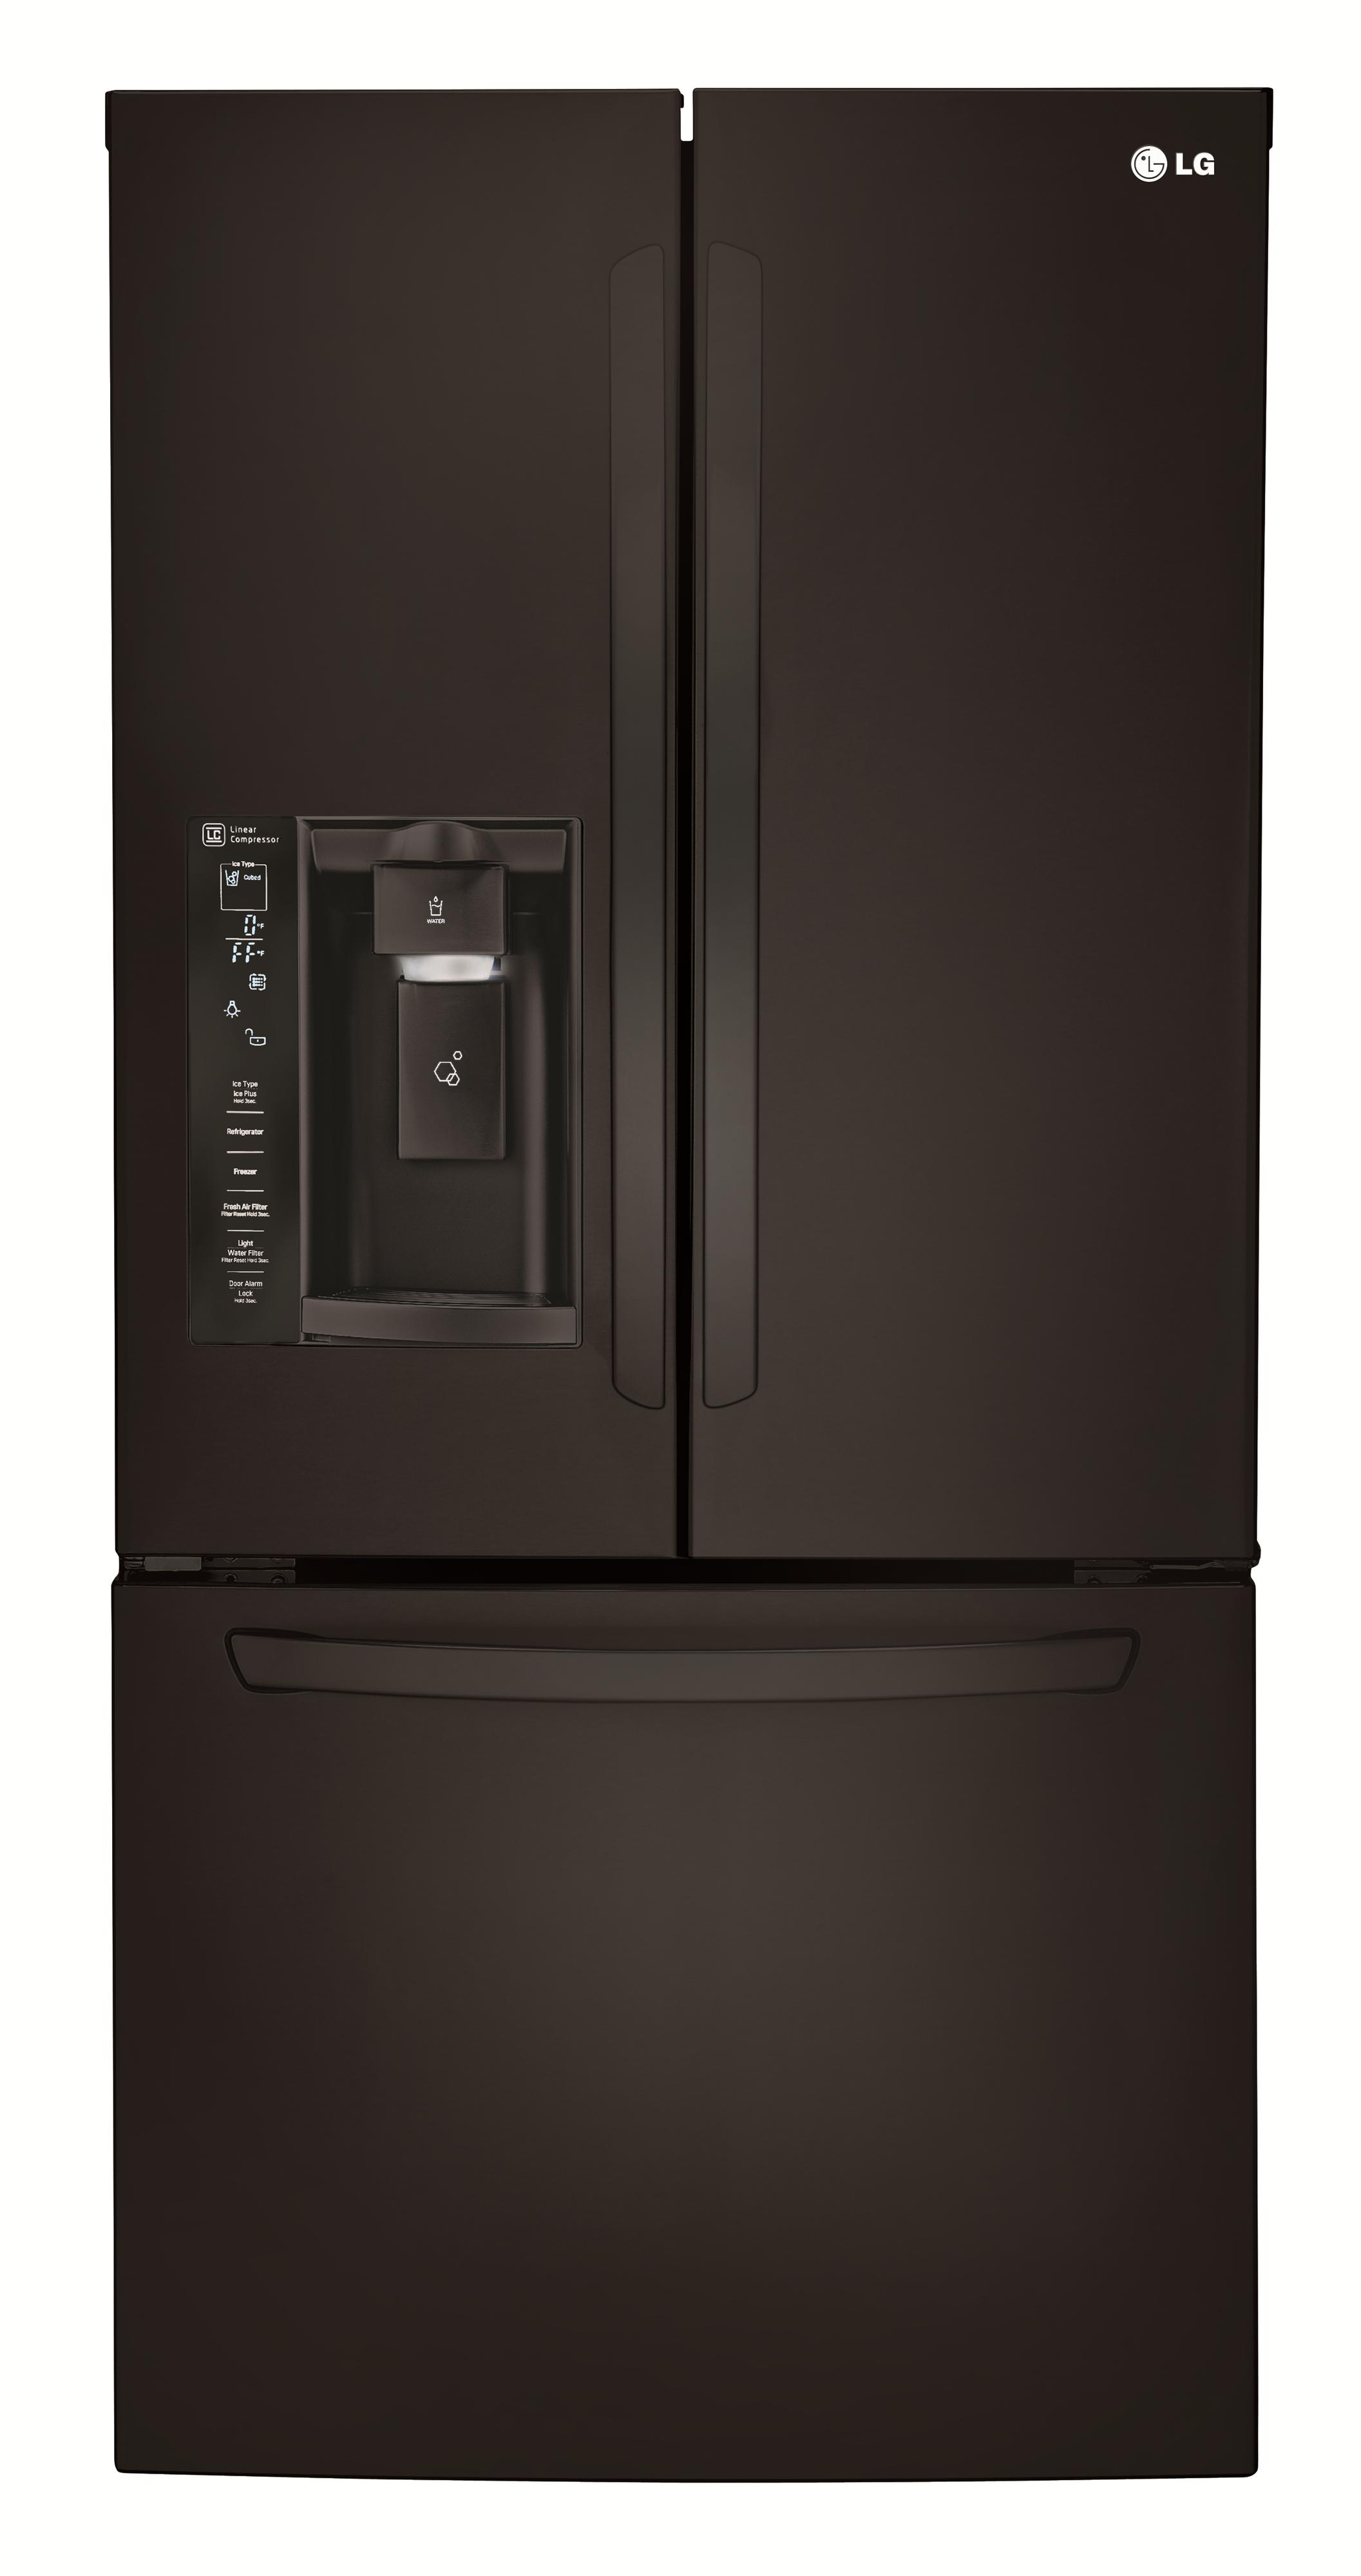 LG Appliances French Door Refrigerators 24.2 Cu. Ft. 3 Door French Door Fridge - Item Number: LFXS24623B